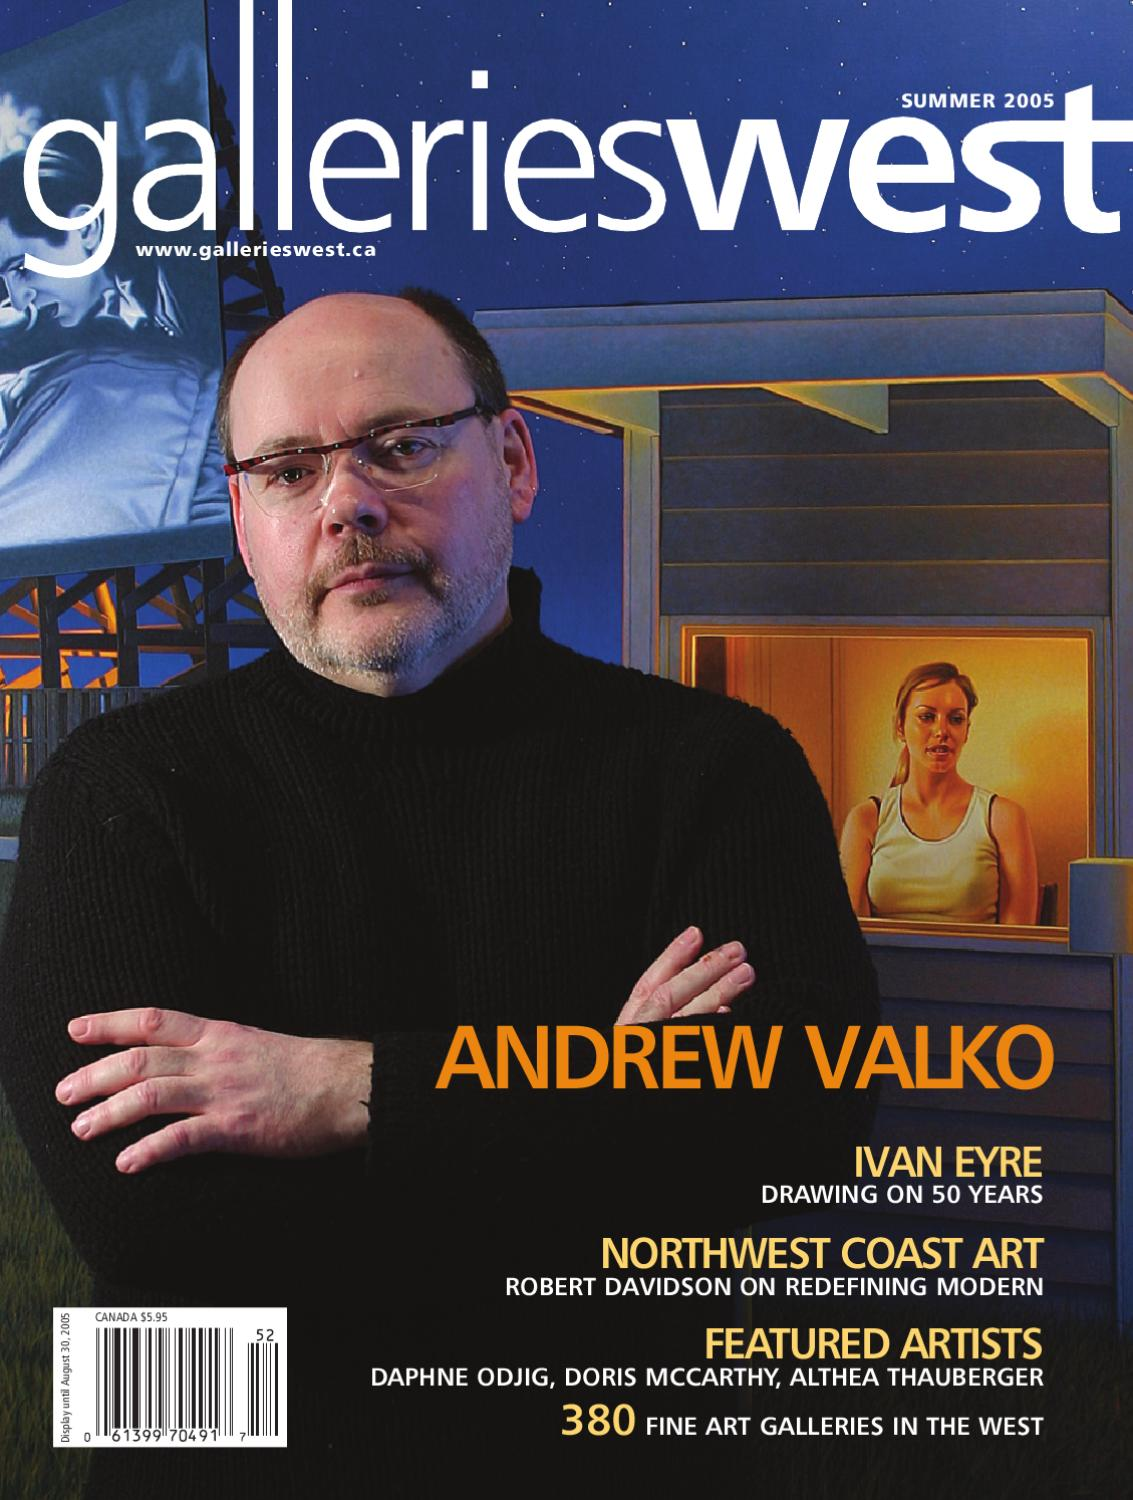 Galleries West Summer 2005 By Issuu Computer Circuit Board Stock Image T356 0546 Science Photo Library